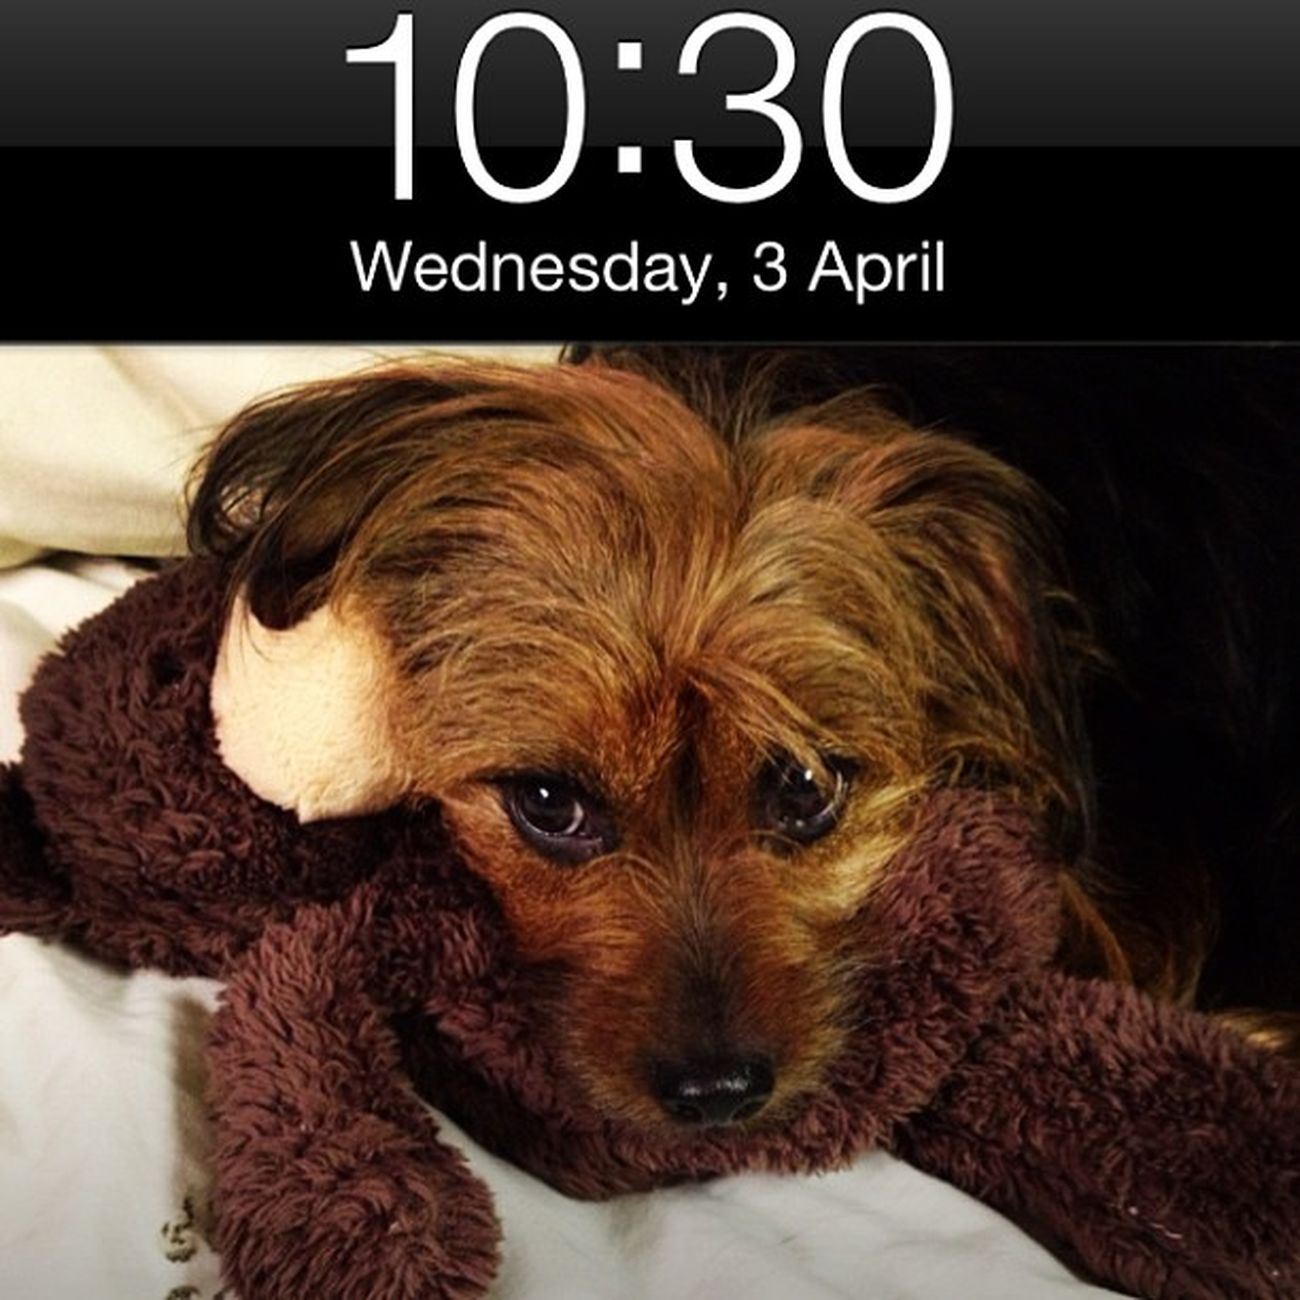 Aprilphotoaday Lockscreen